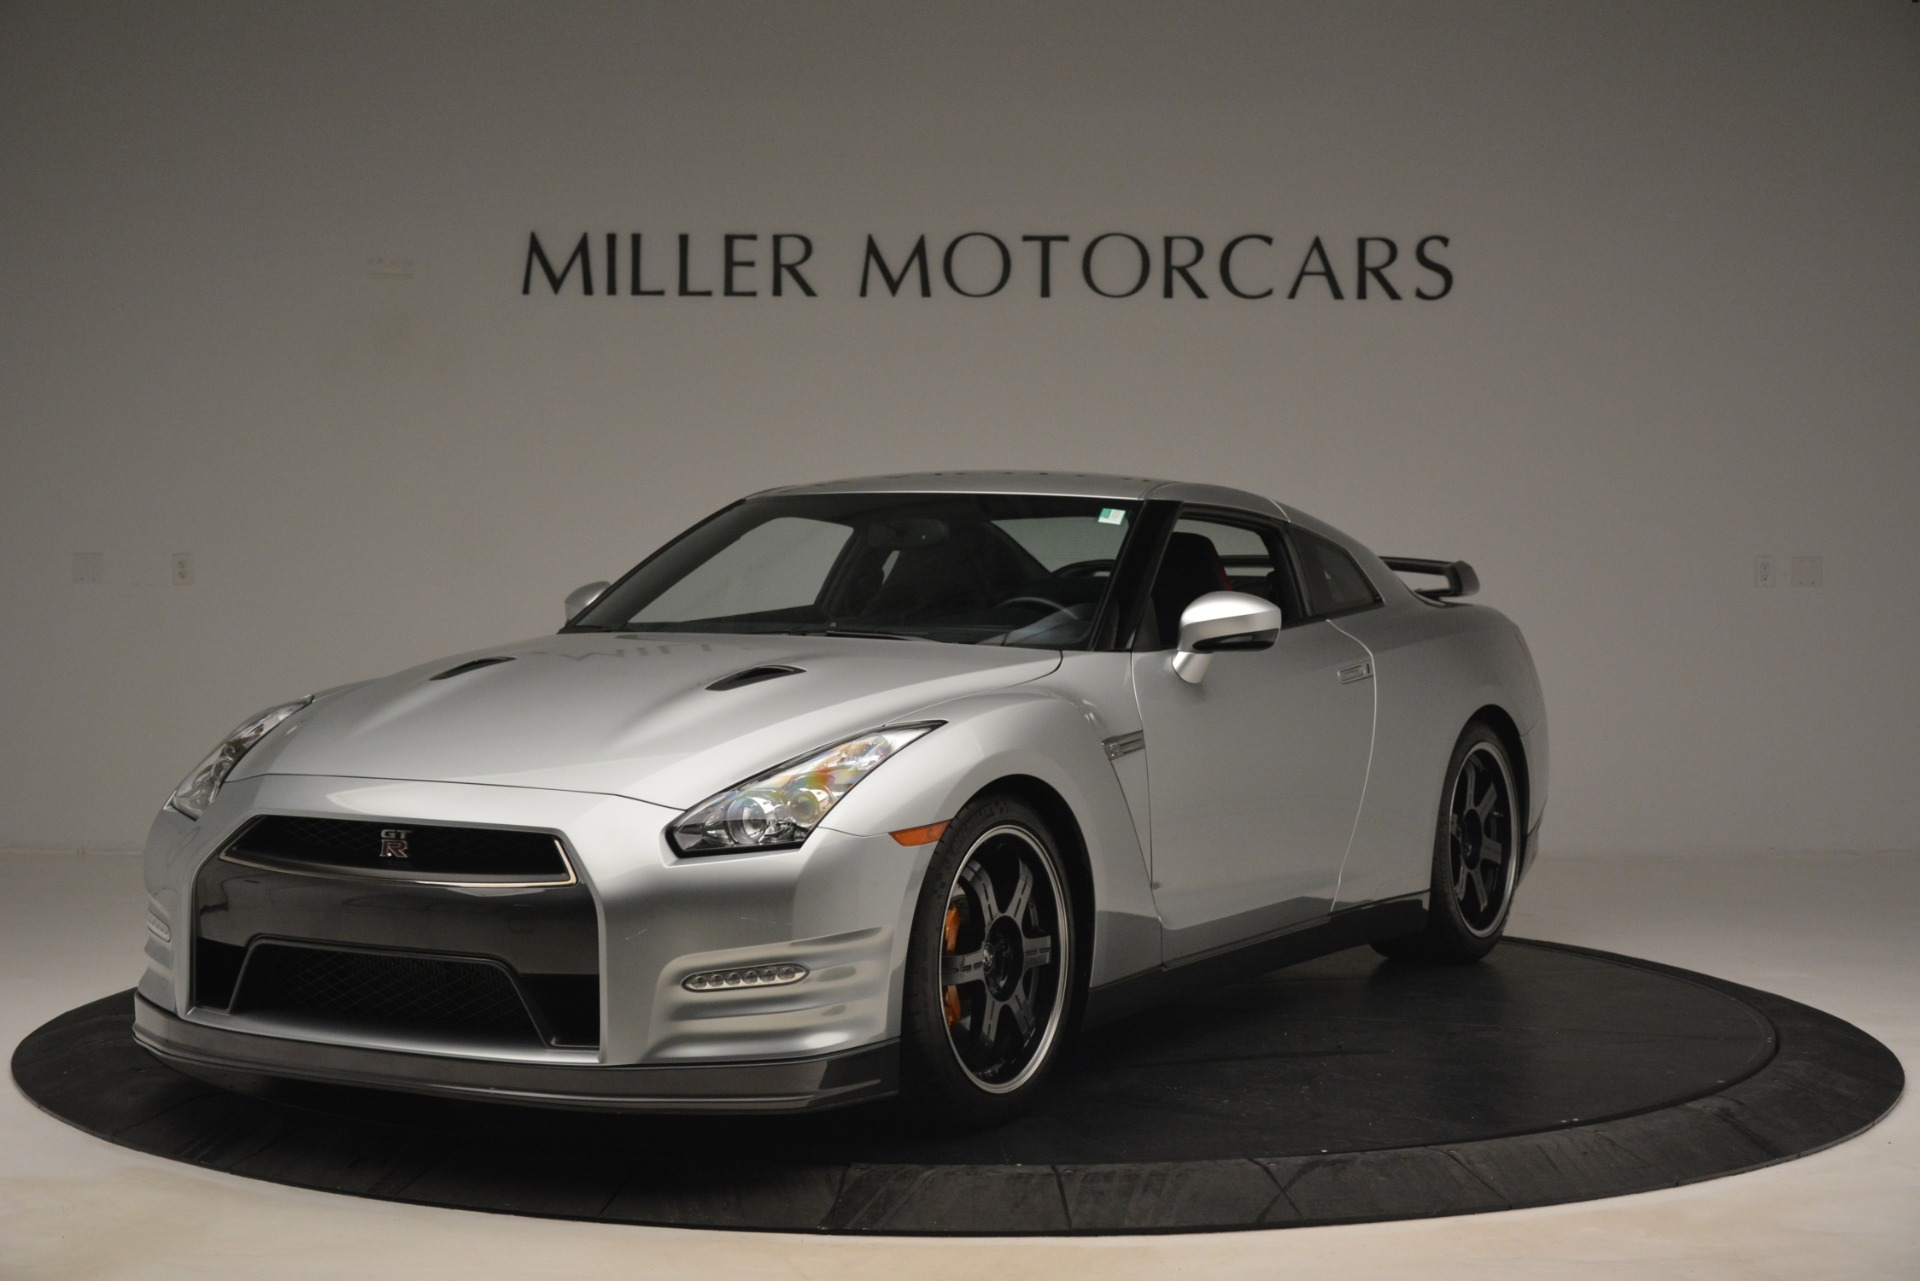 Used 2013 Nissan GT-R Black Edition for sale Sold at McLaren Greenwich in Greenwich CT 06830 1